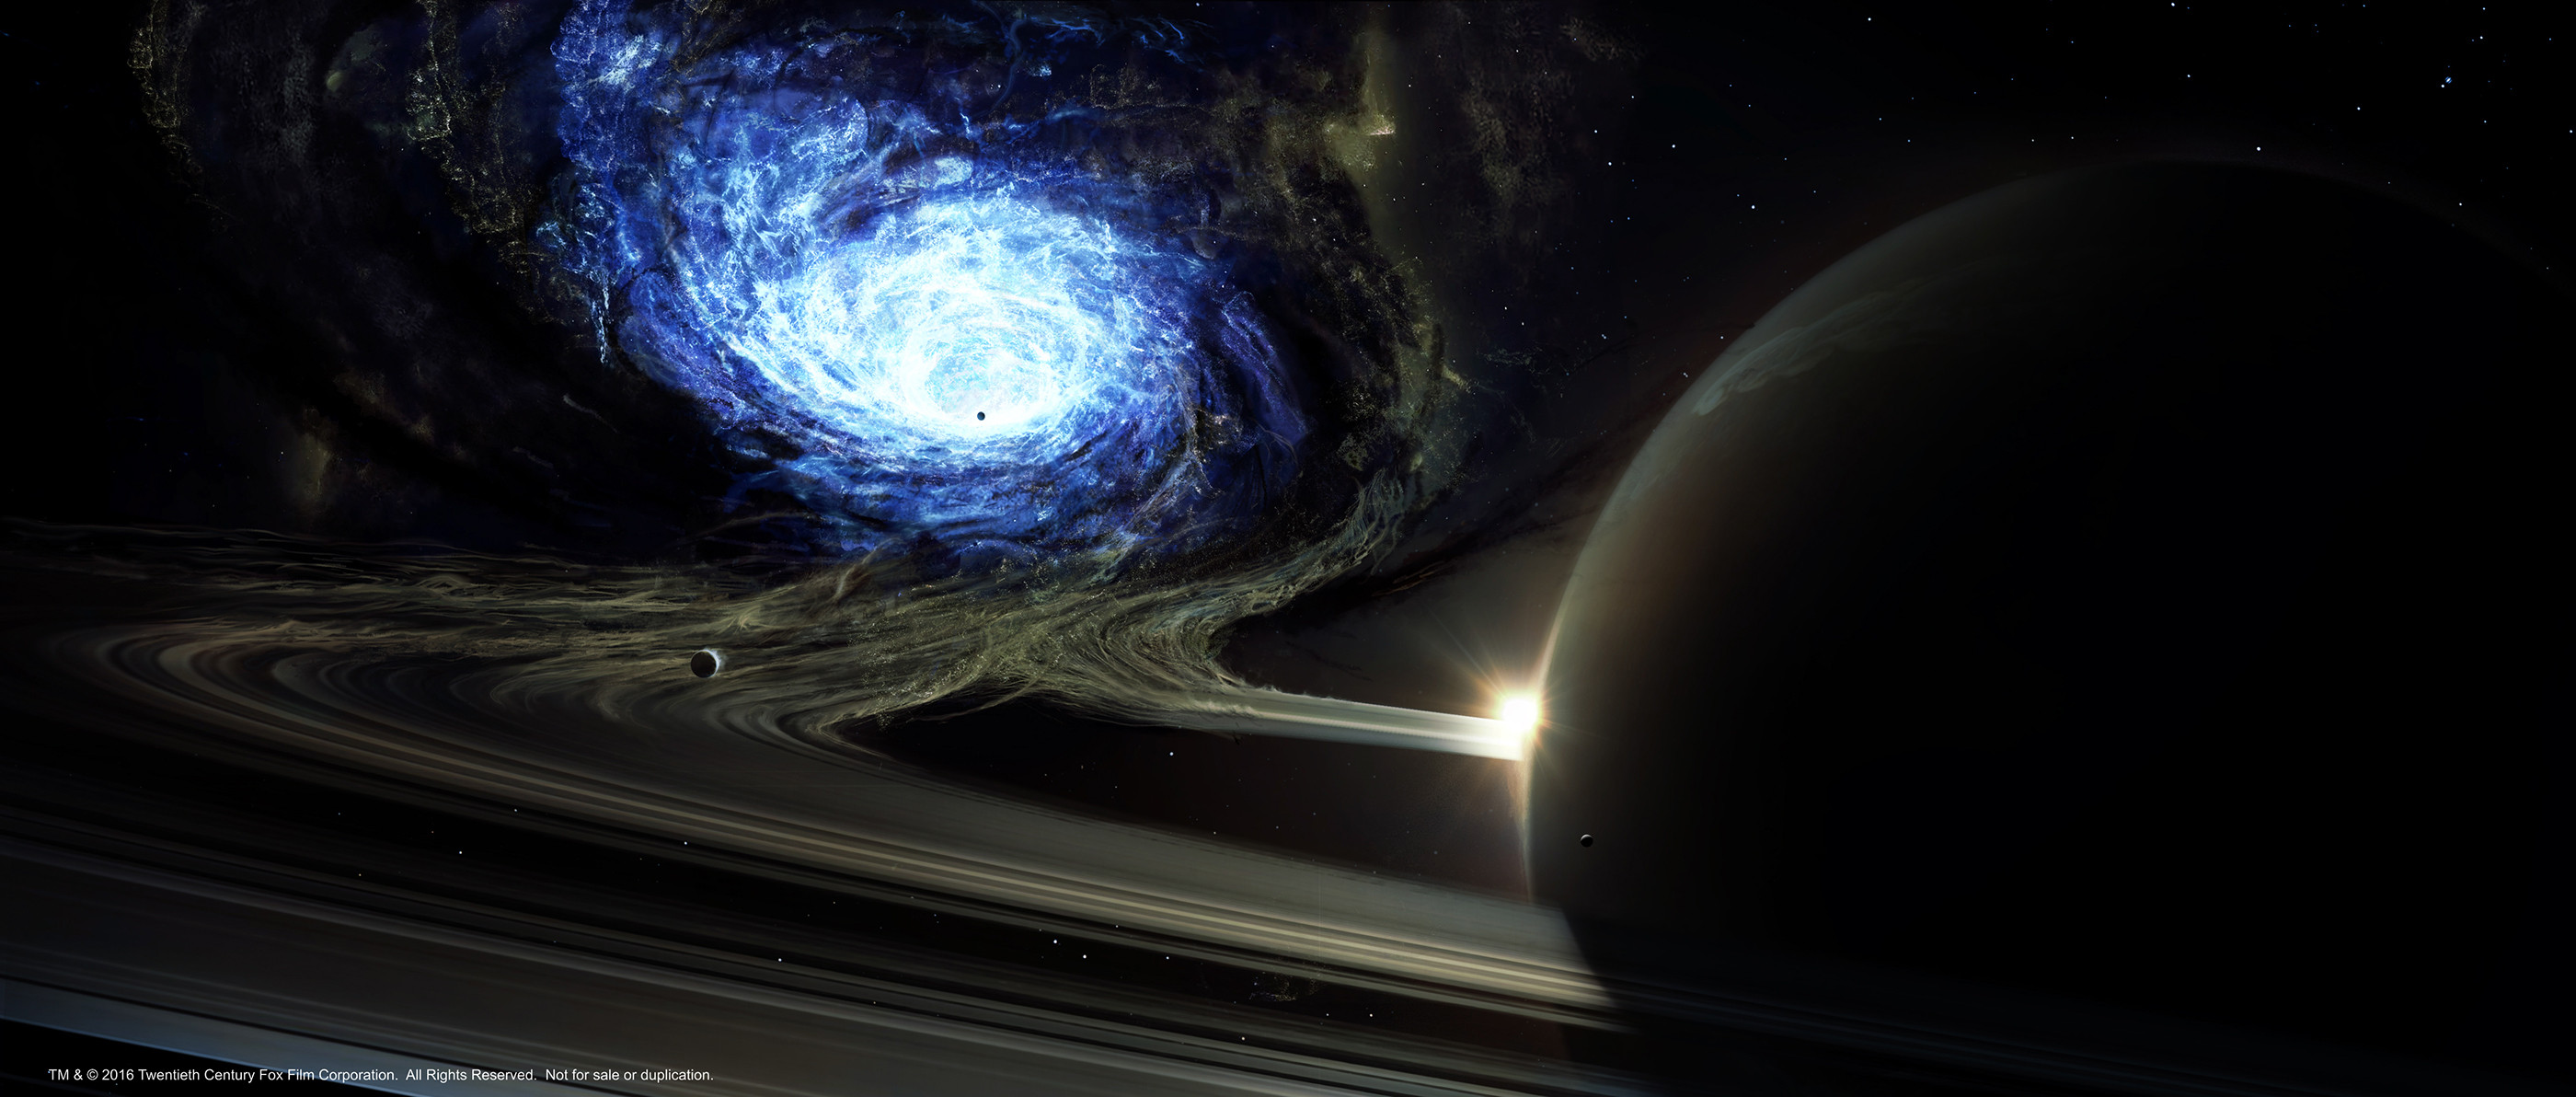 Wormhole, phase 3. Collaboration with concept artist Luis Guggenberger.